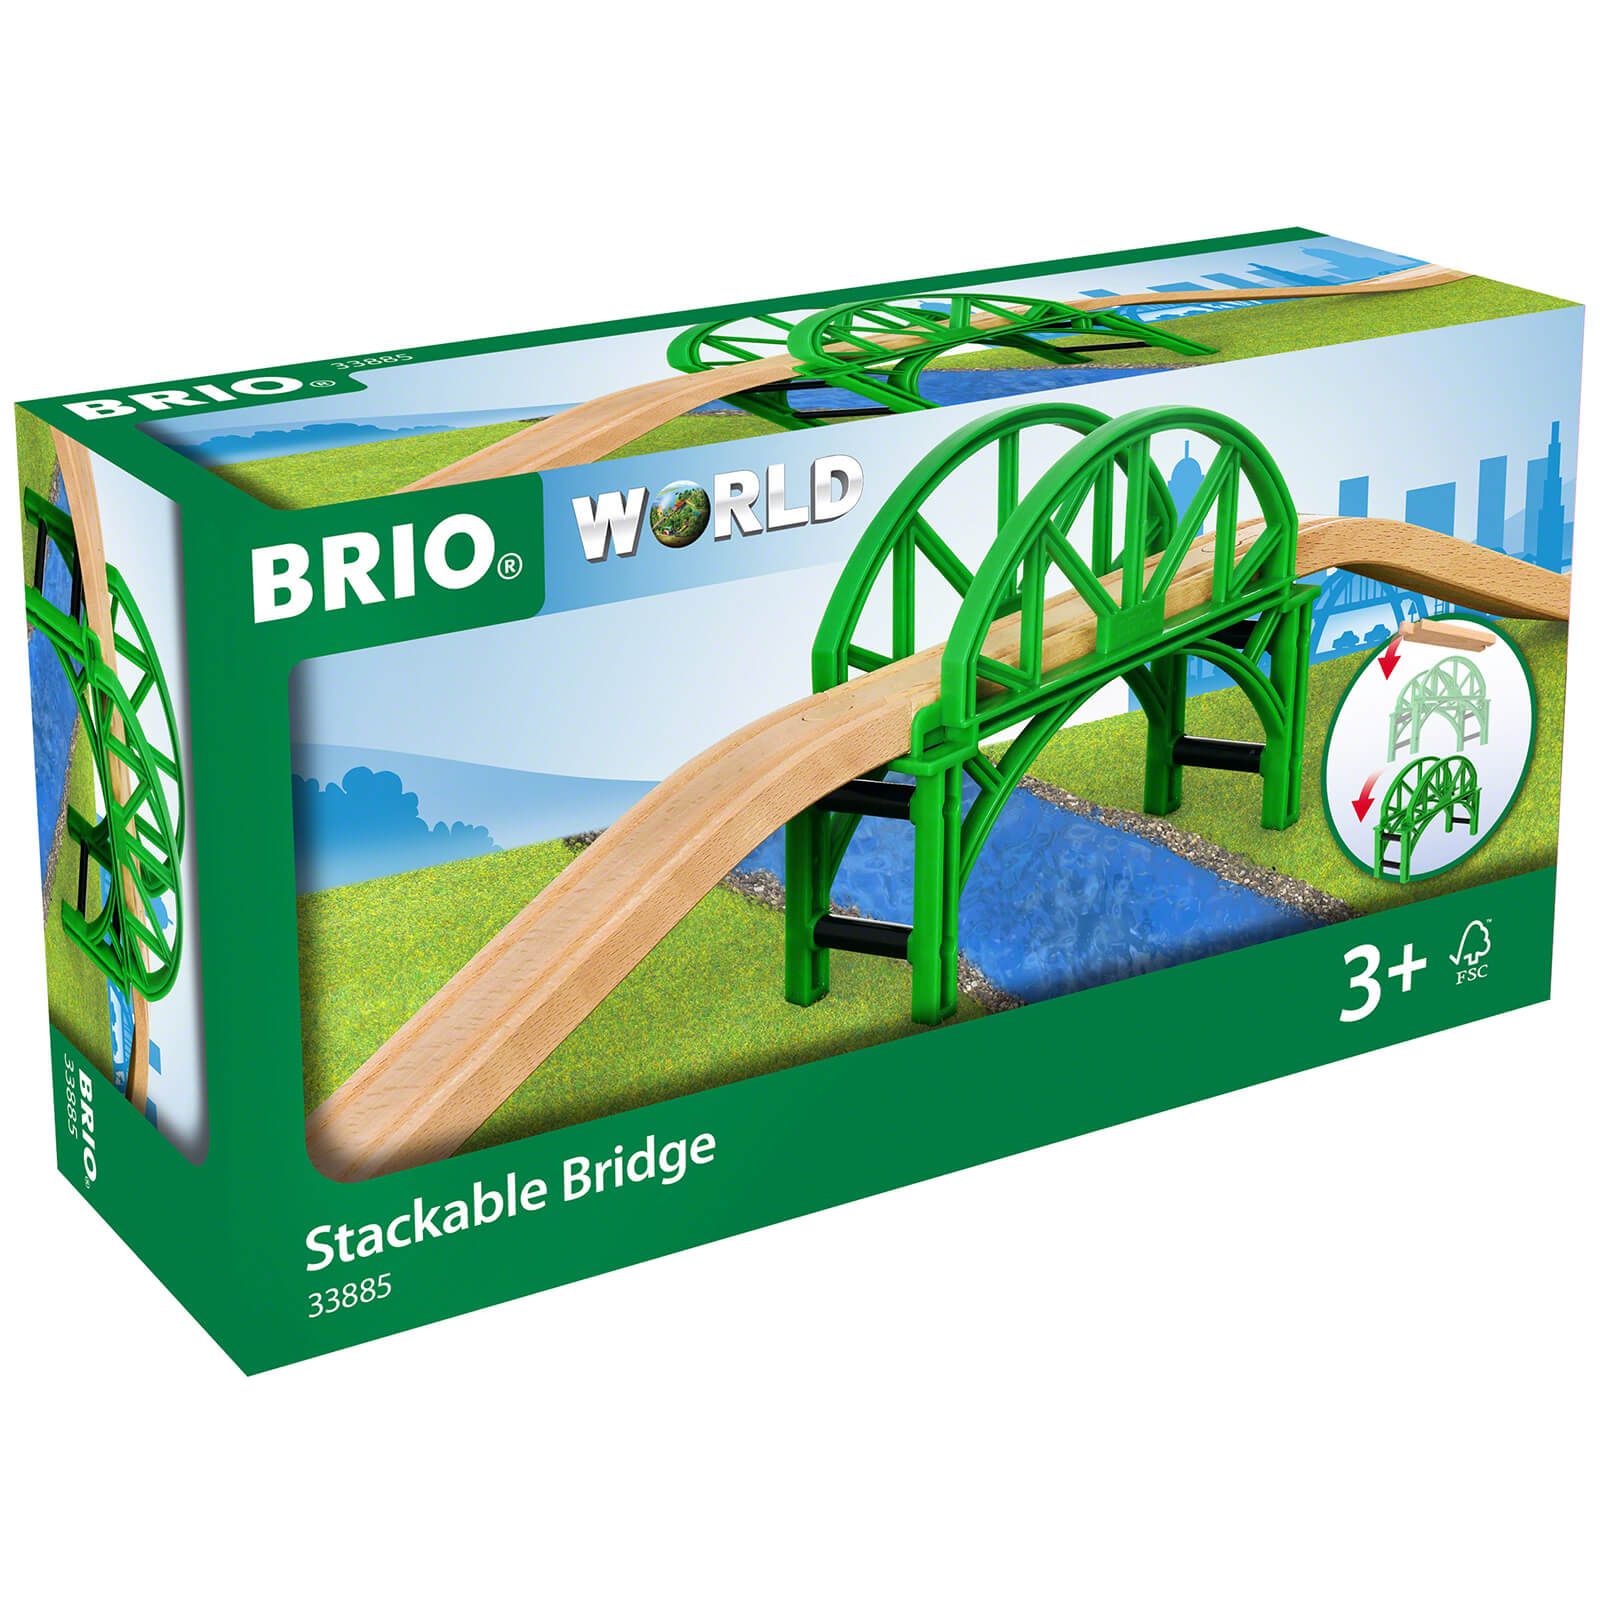 Brio Stackable Bridge